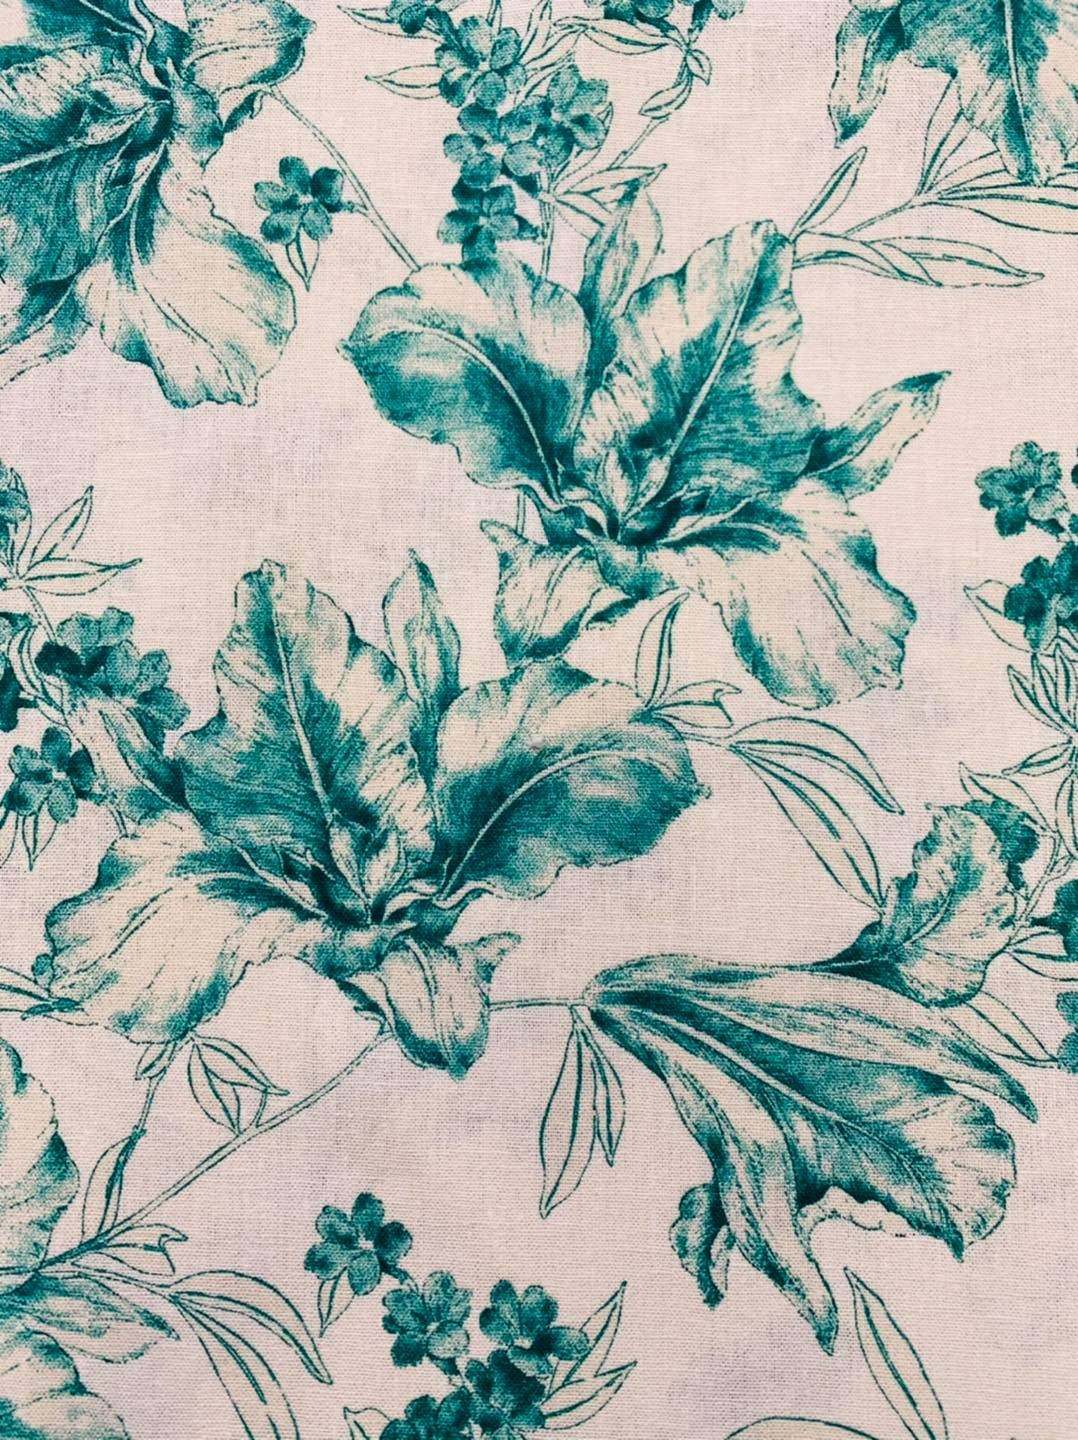 Magnolia Bloom in Teal and White